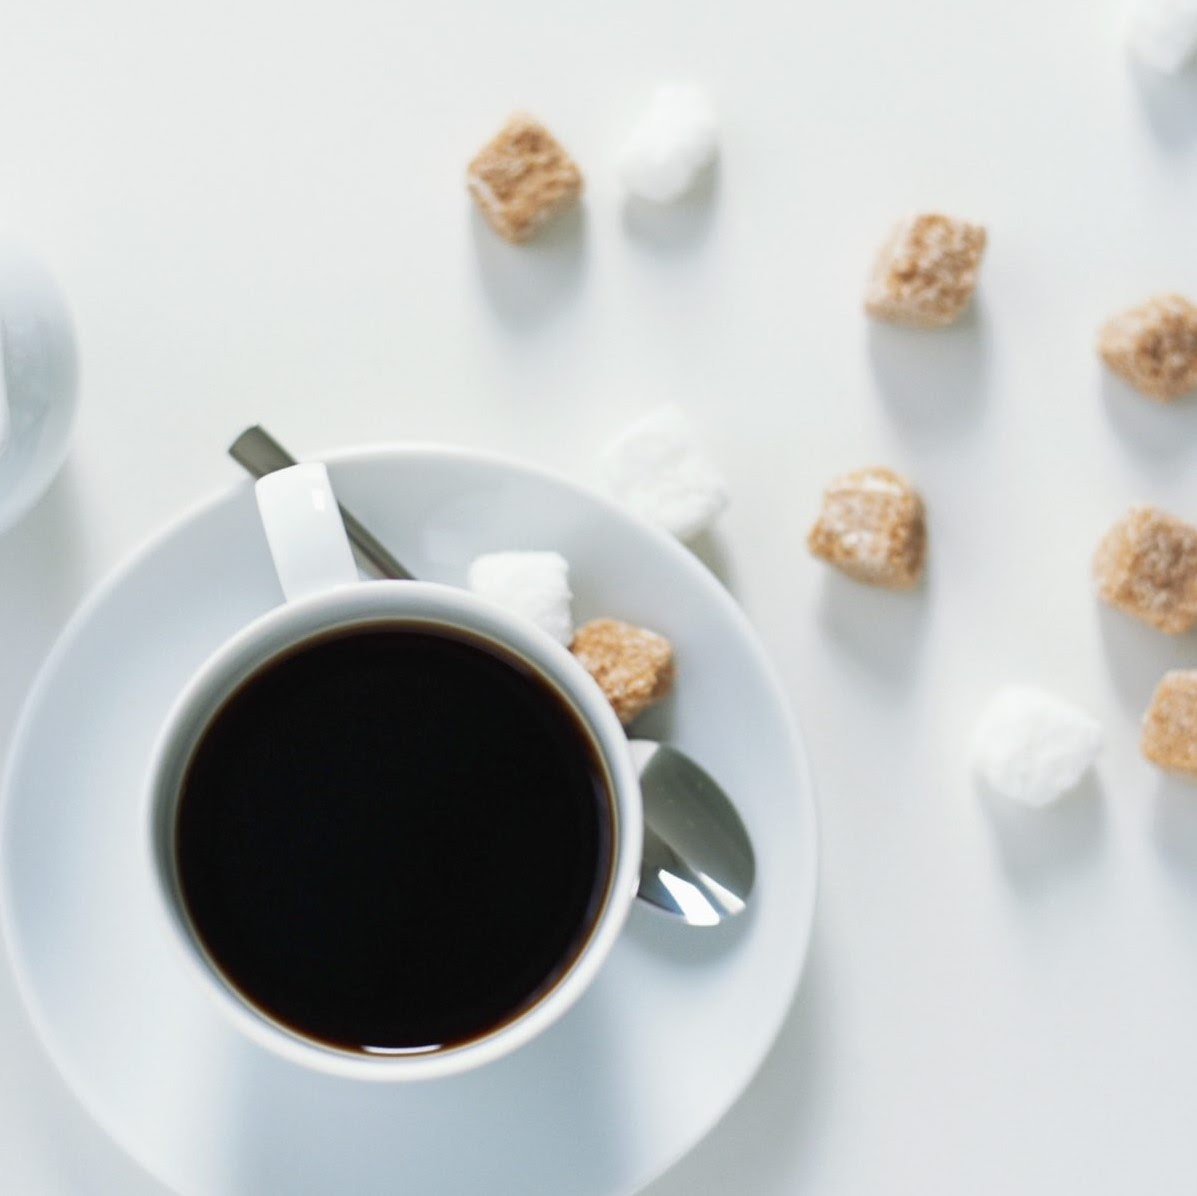 avoid adding sugar to your coffee